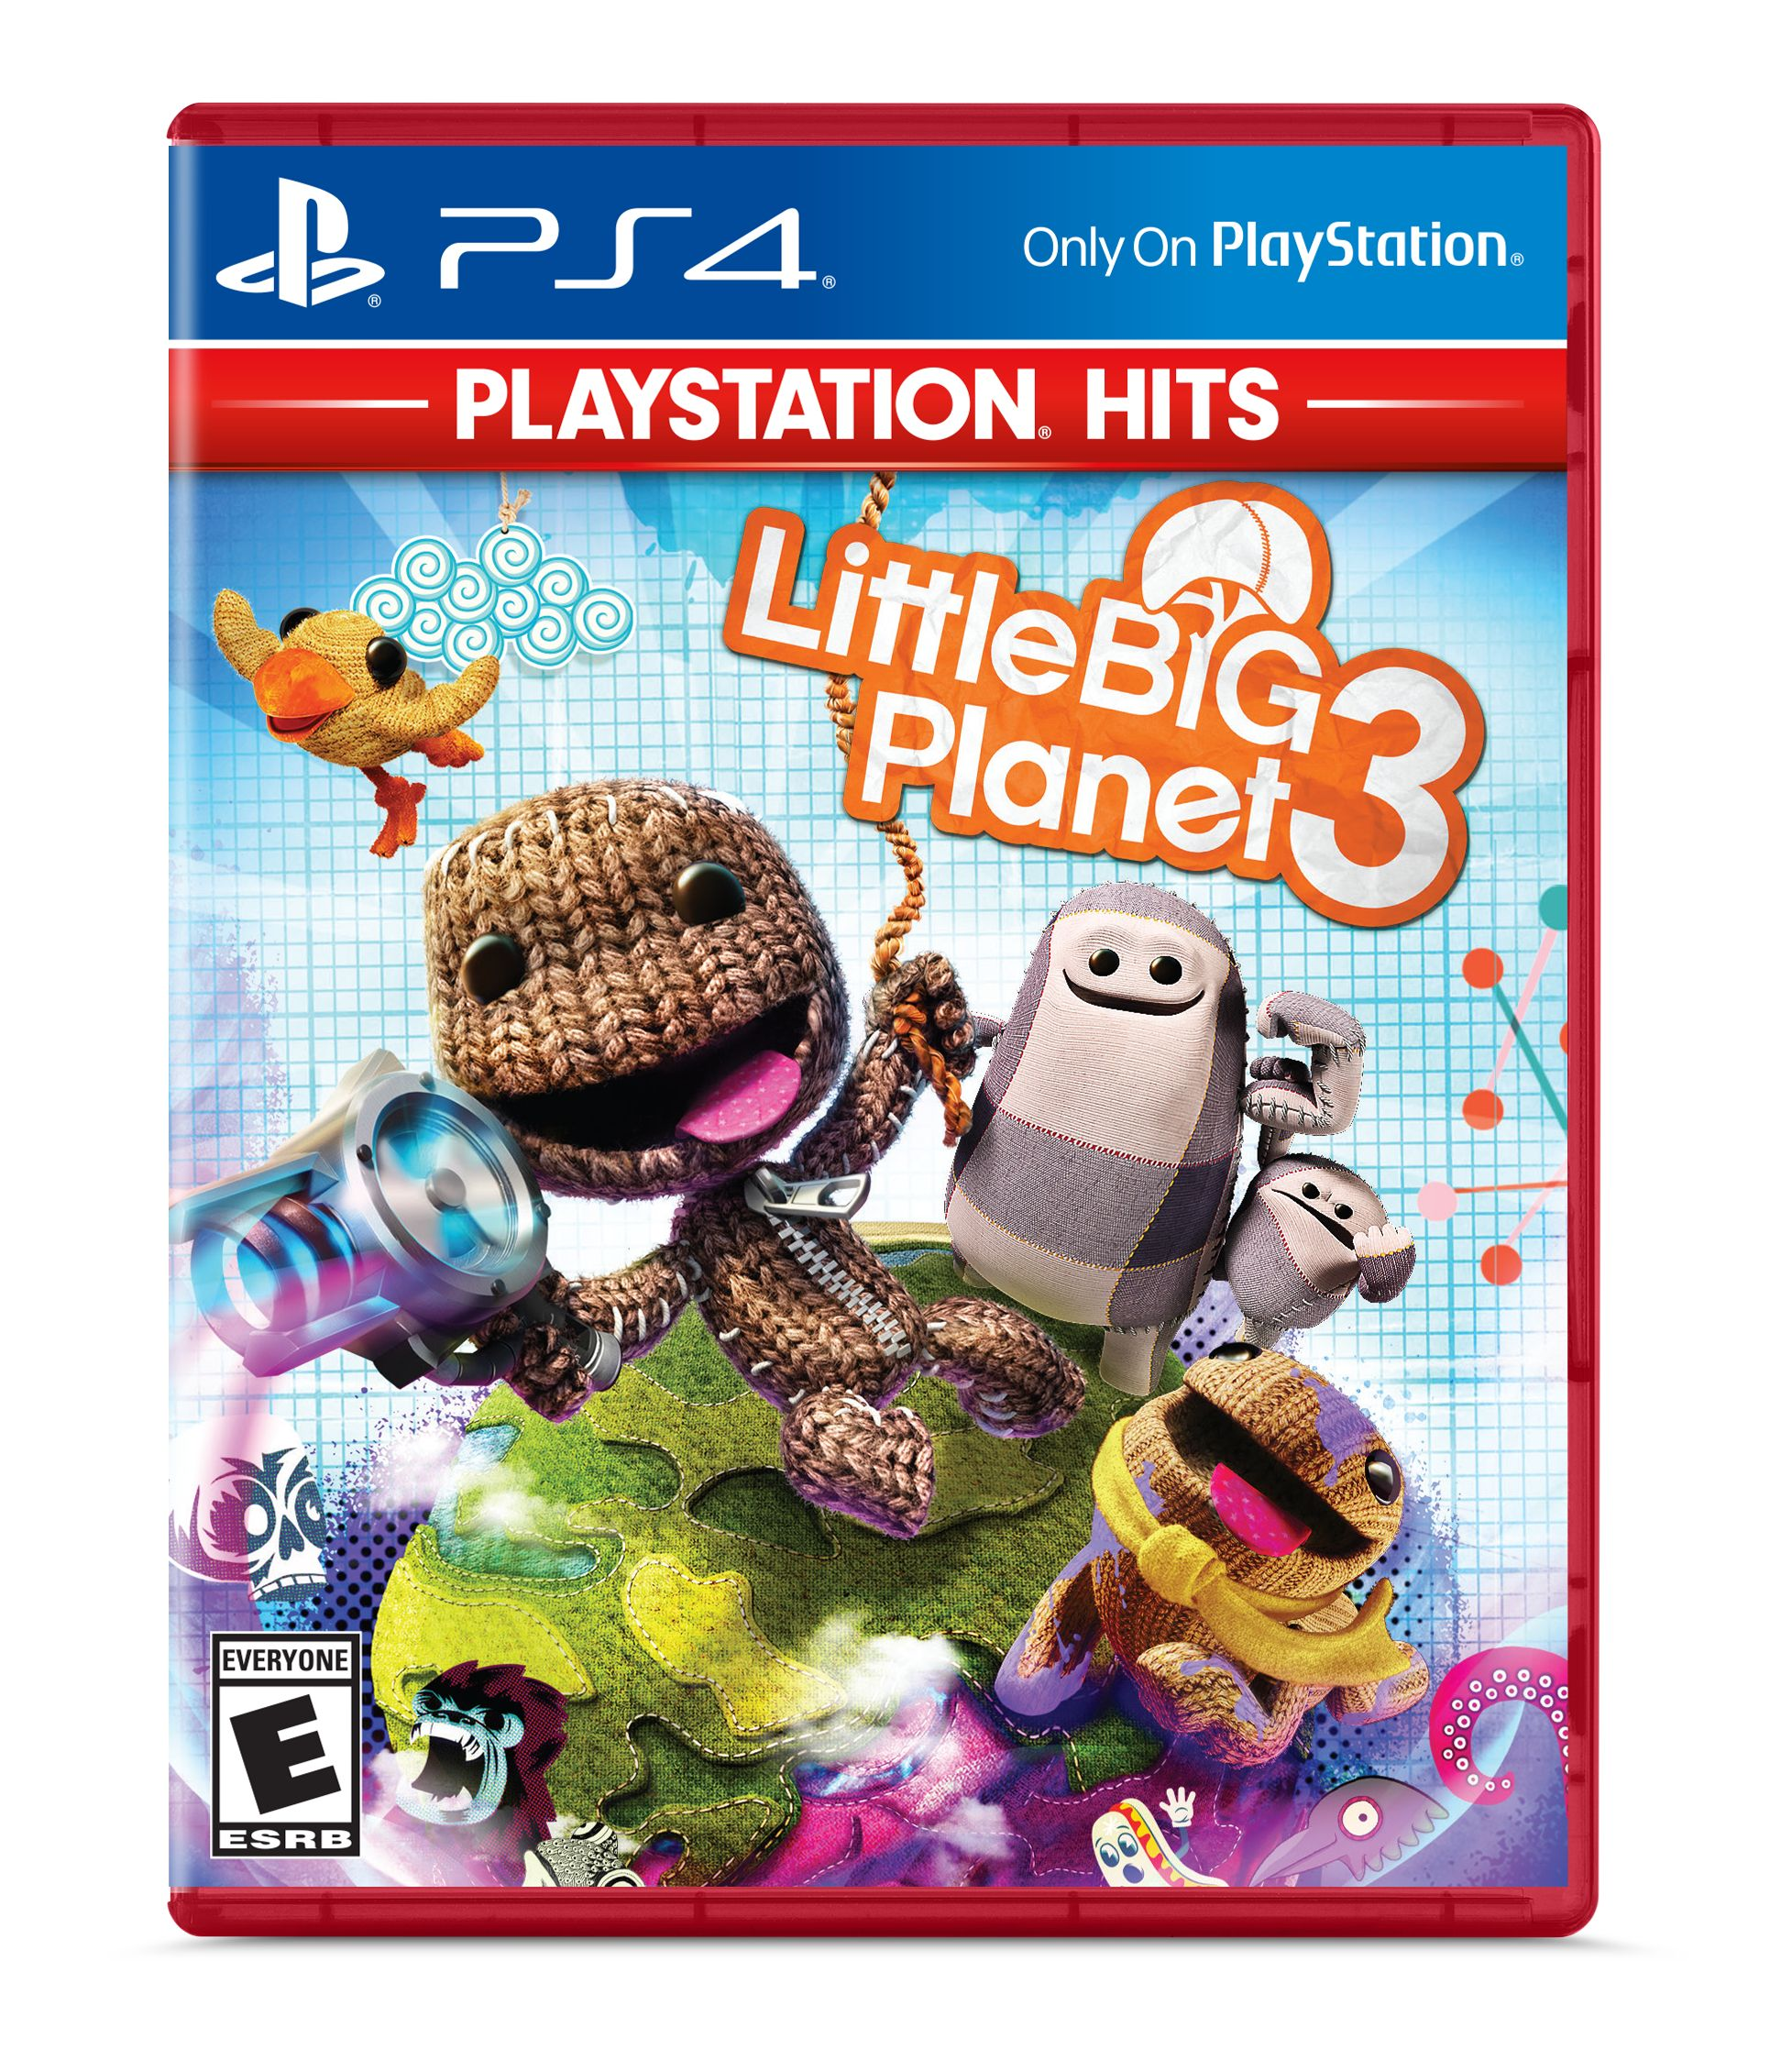 LittleBigPlanet 3 - PlayStation Hits, Sony, PlayStation 4, 711719523178